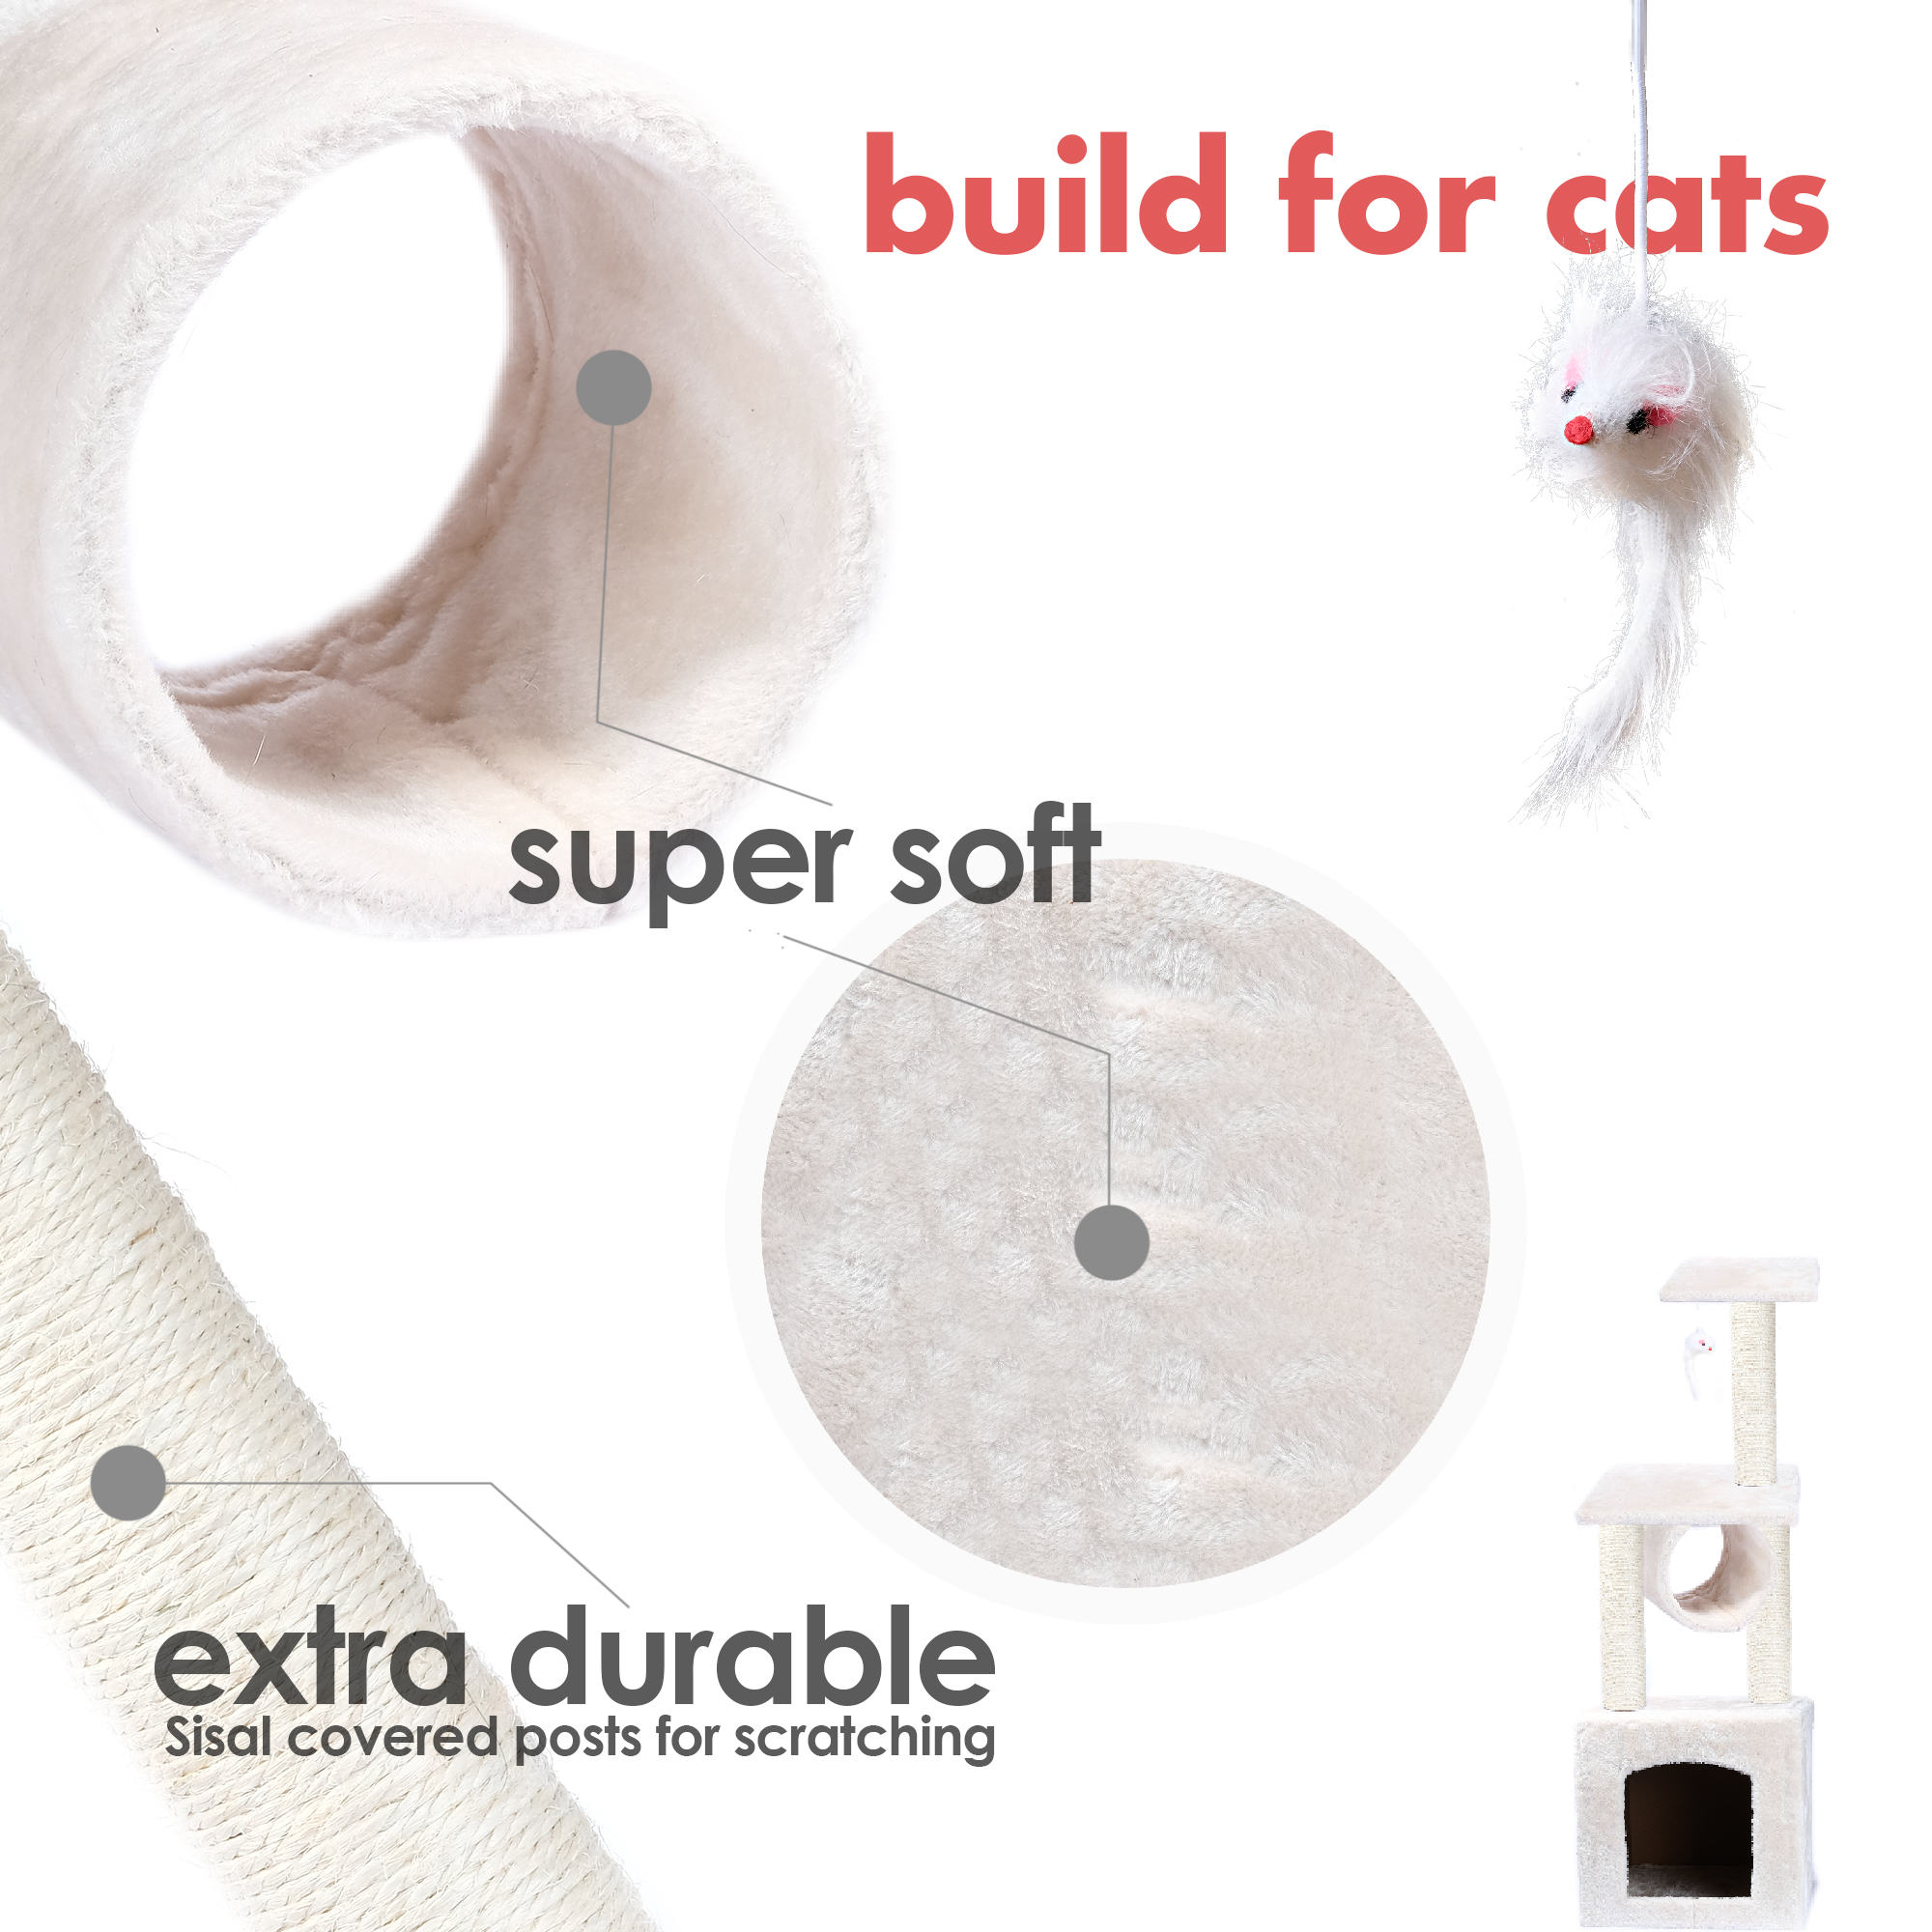 build for cats.jpg